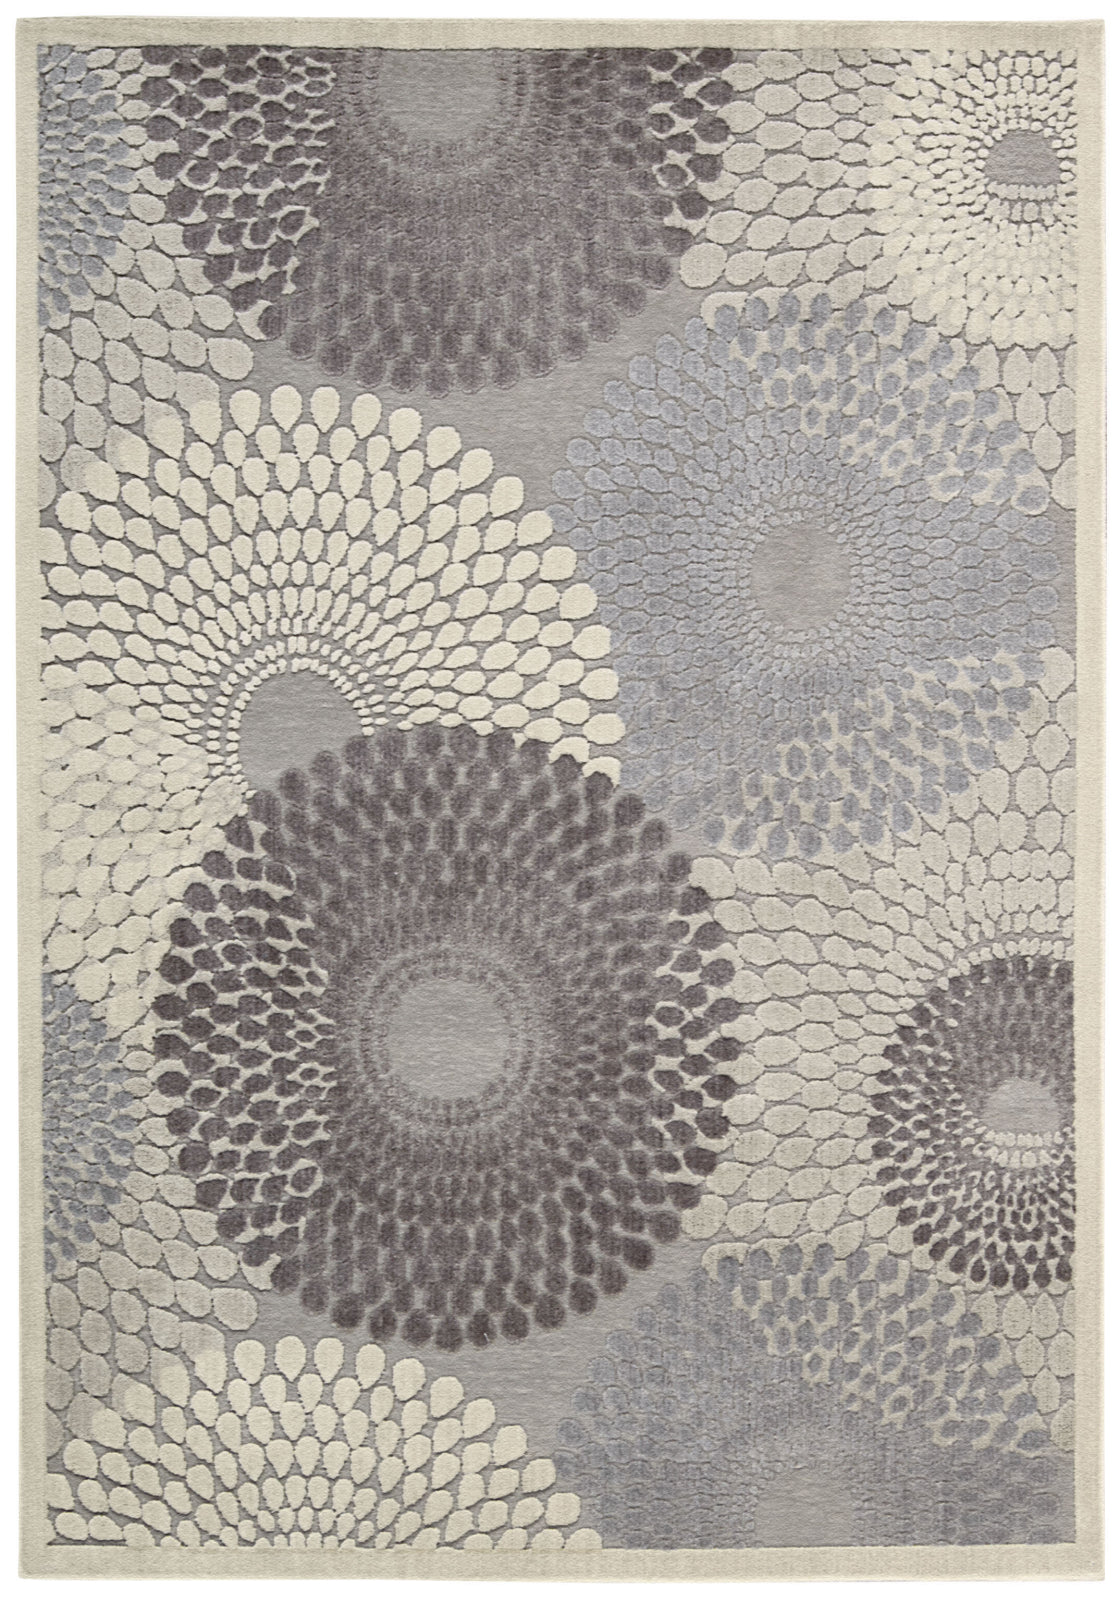 Nourison Graphic Illusions GIL04 Grey Area Rug main image